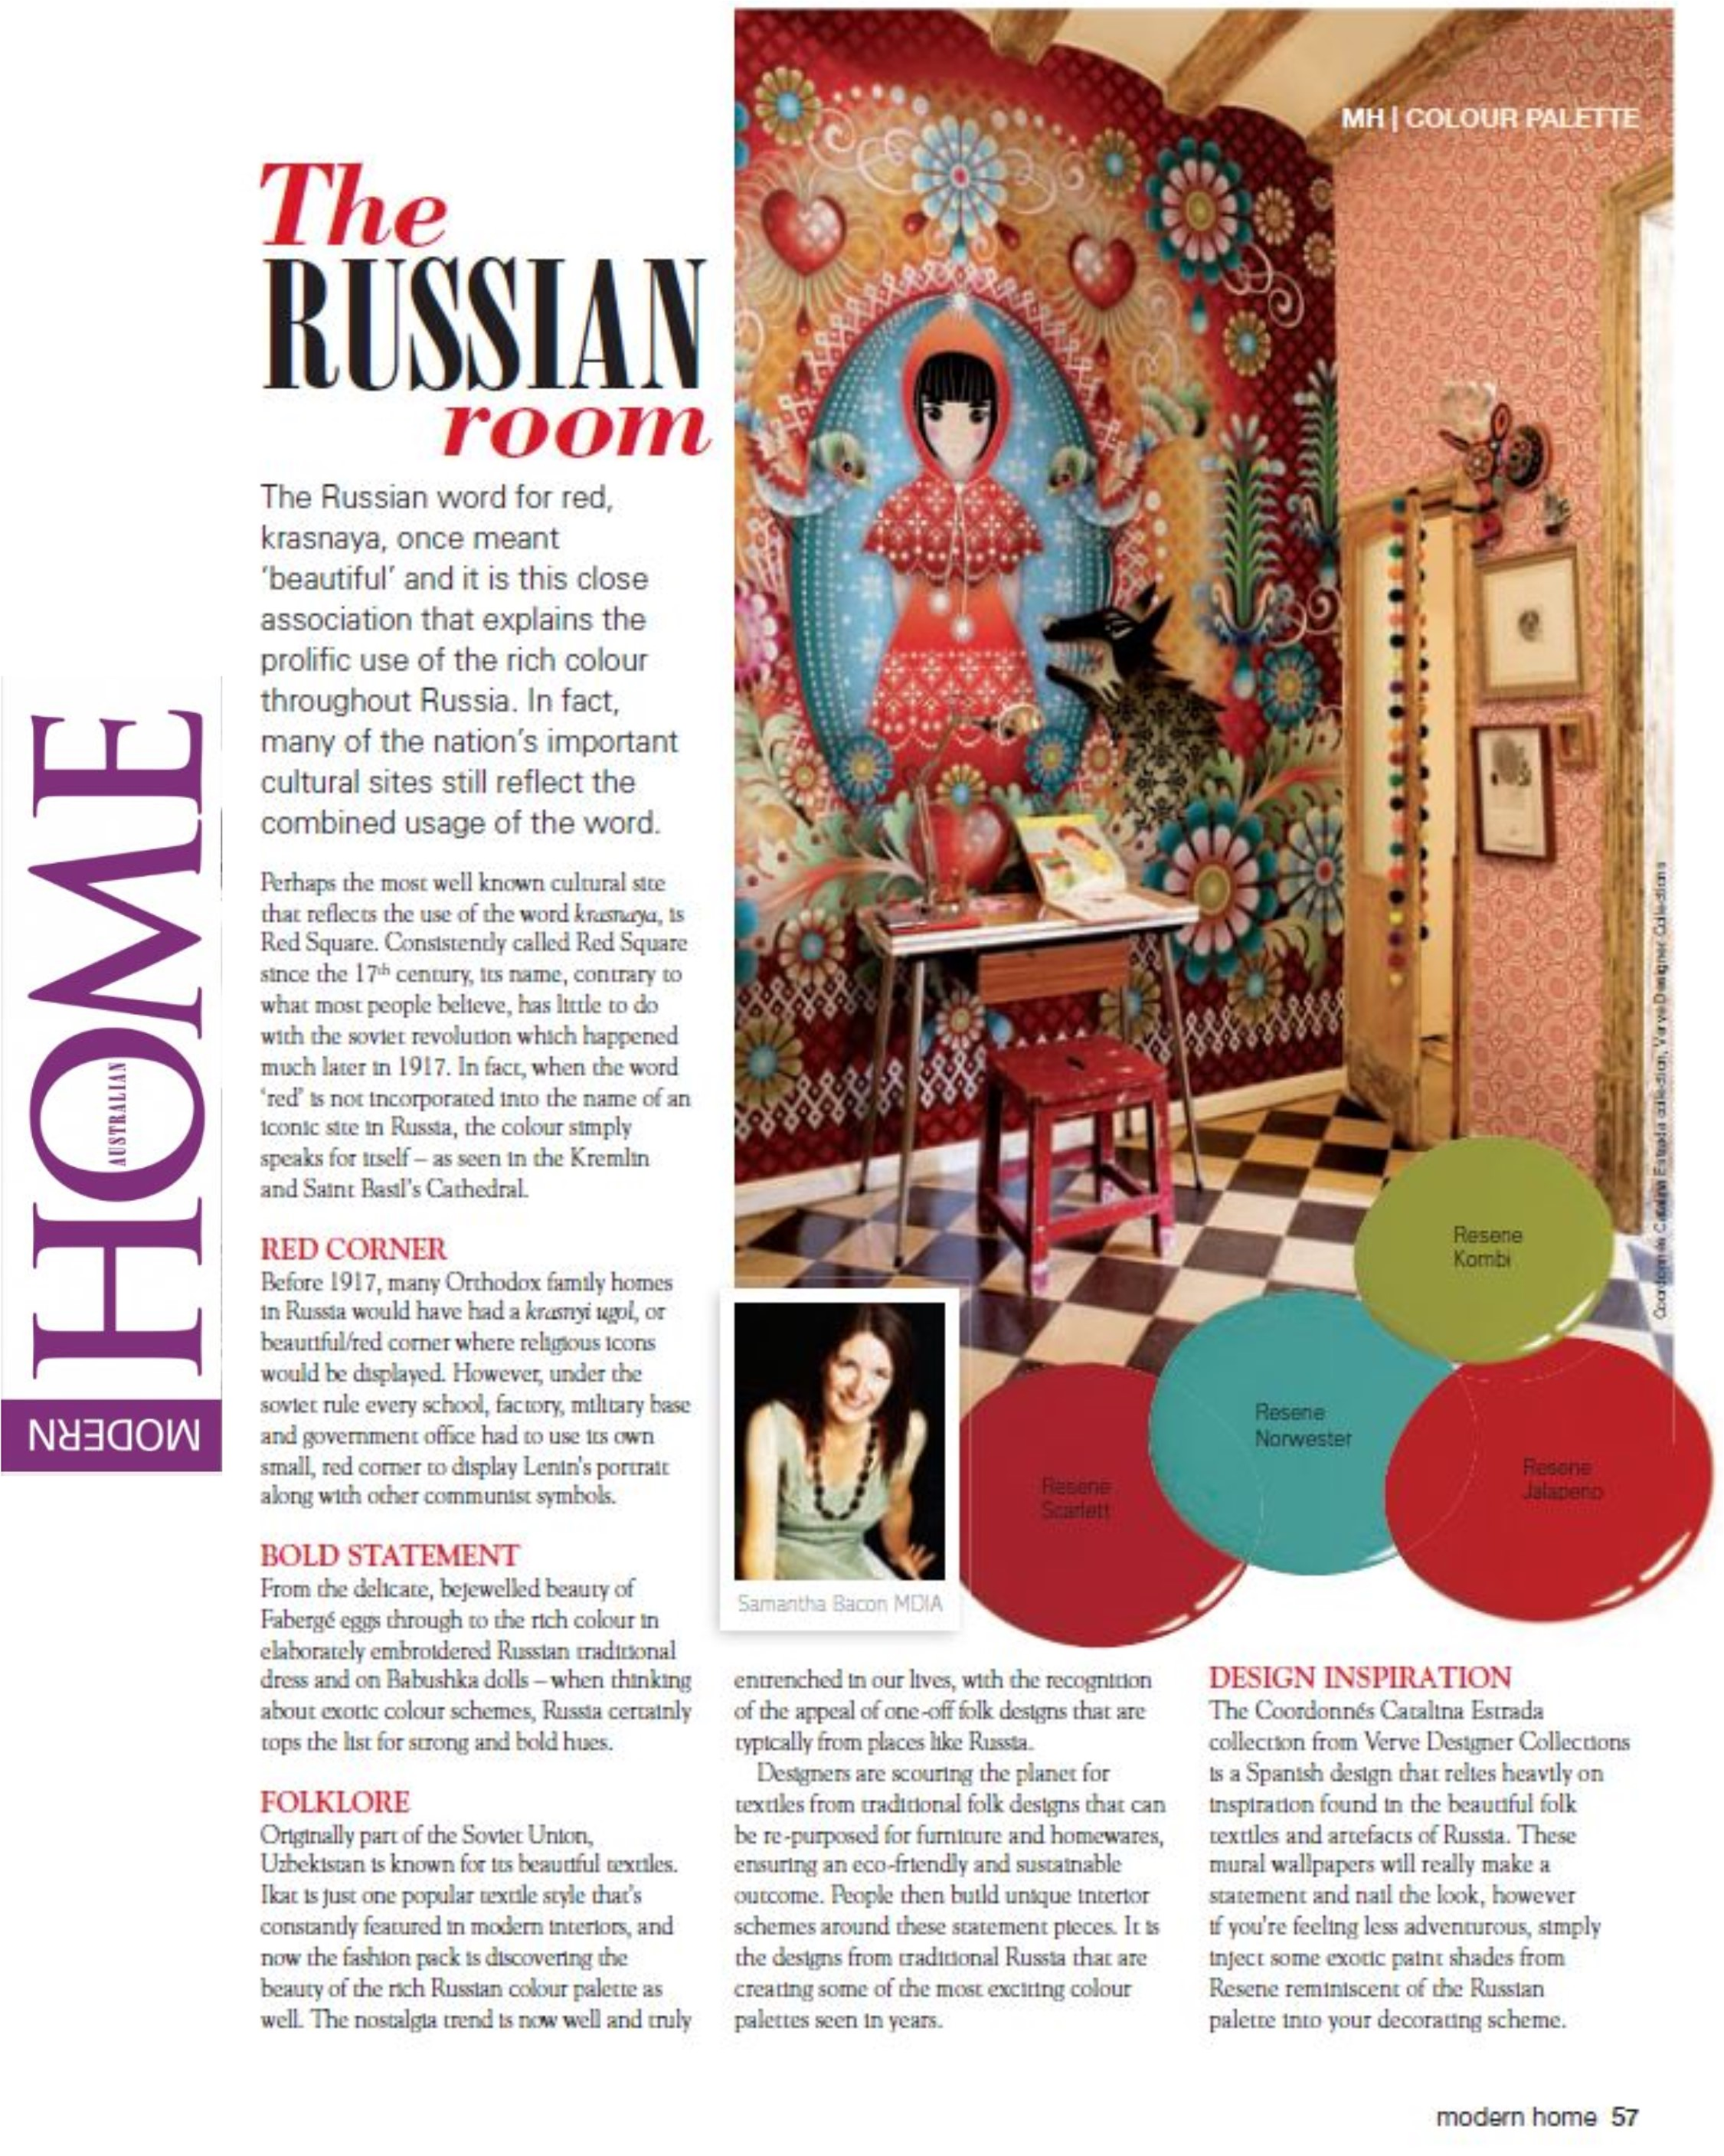 How to decorate a room with a Russian influence